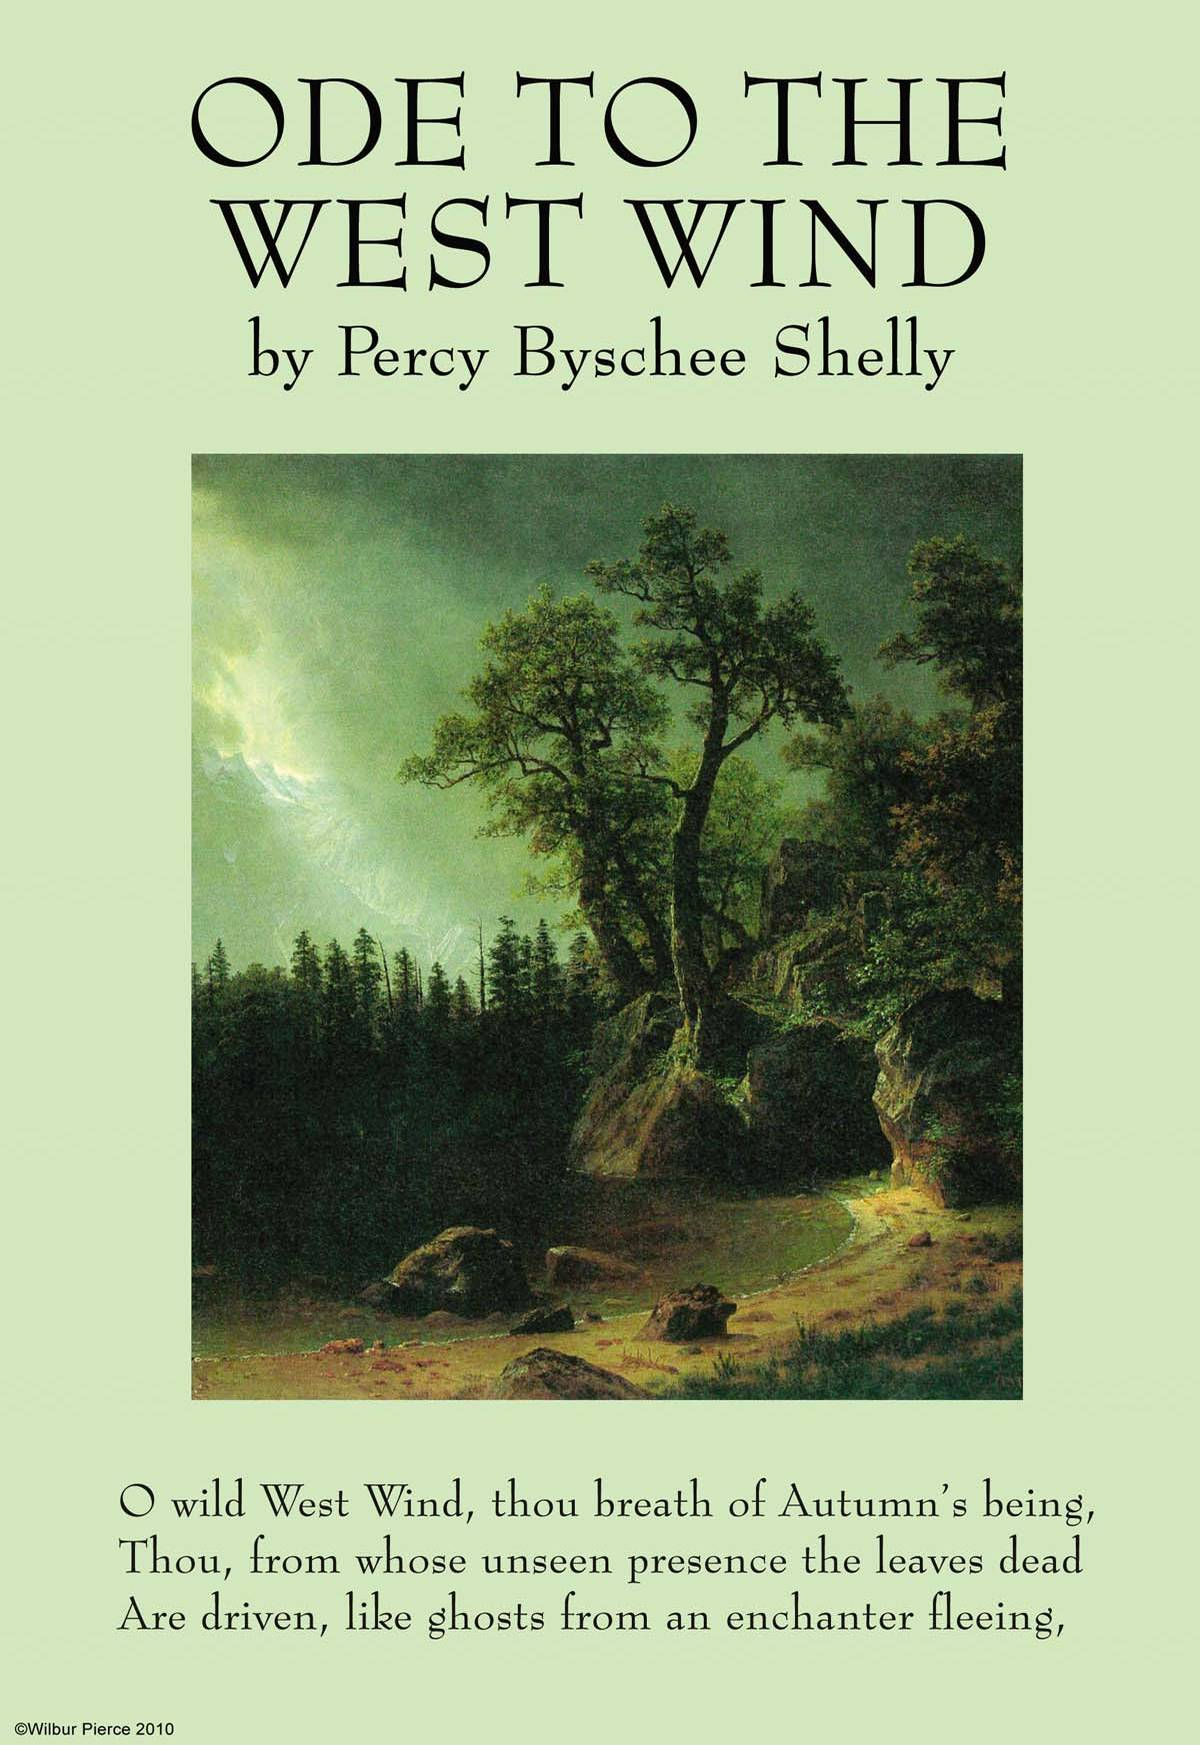 a comparison of ode to the west wind by percy bysshe shelley and ode to a nightingale by john keats Ode to the west wind - percy bysshe shelley ode to the west wind by percy bysshe shelley full poem in hindi john keats- ode to a nightingale.